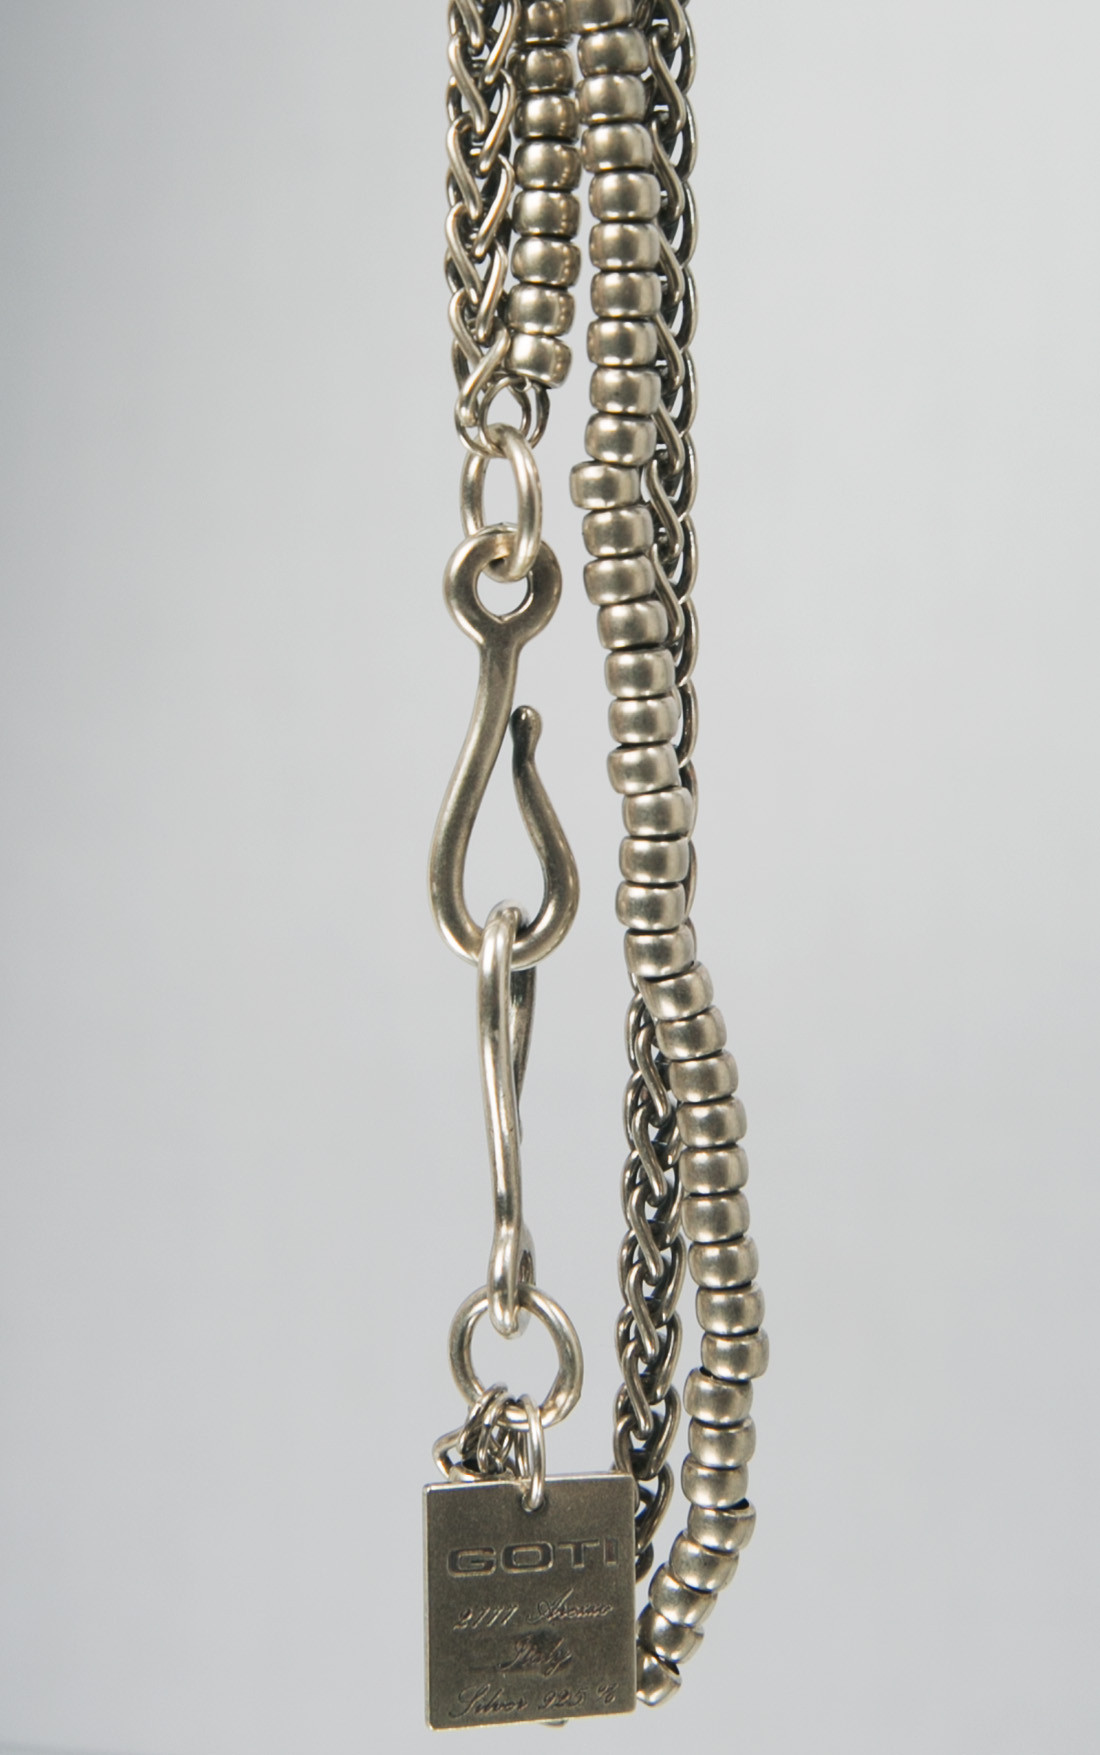 Goti - Long Double Silver Necklace with Multi Pendants (CN1058)